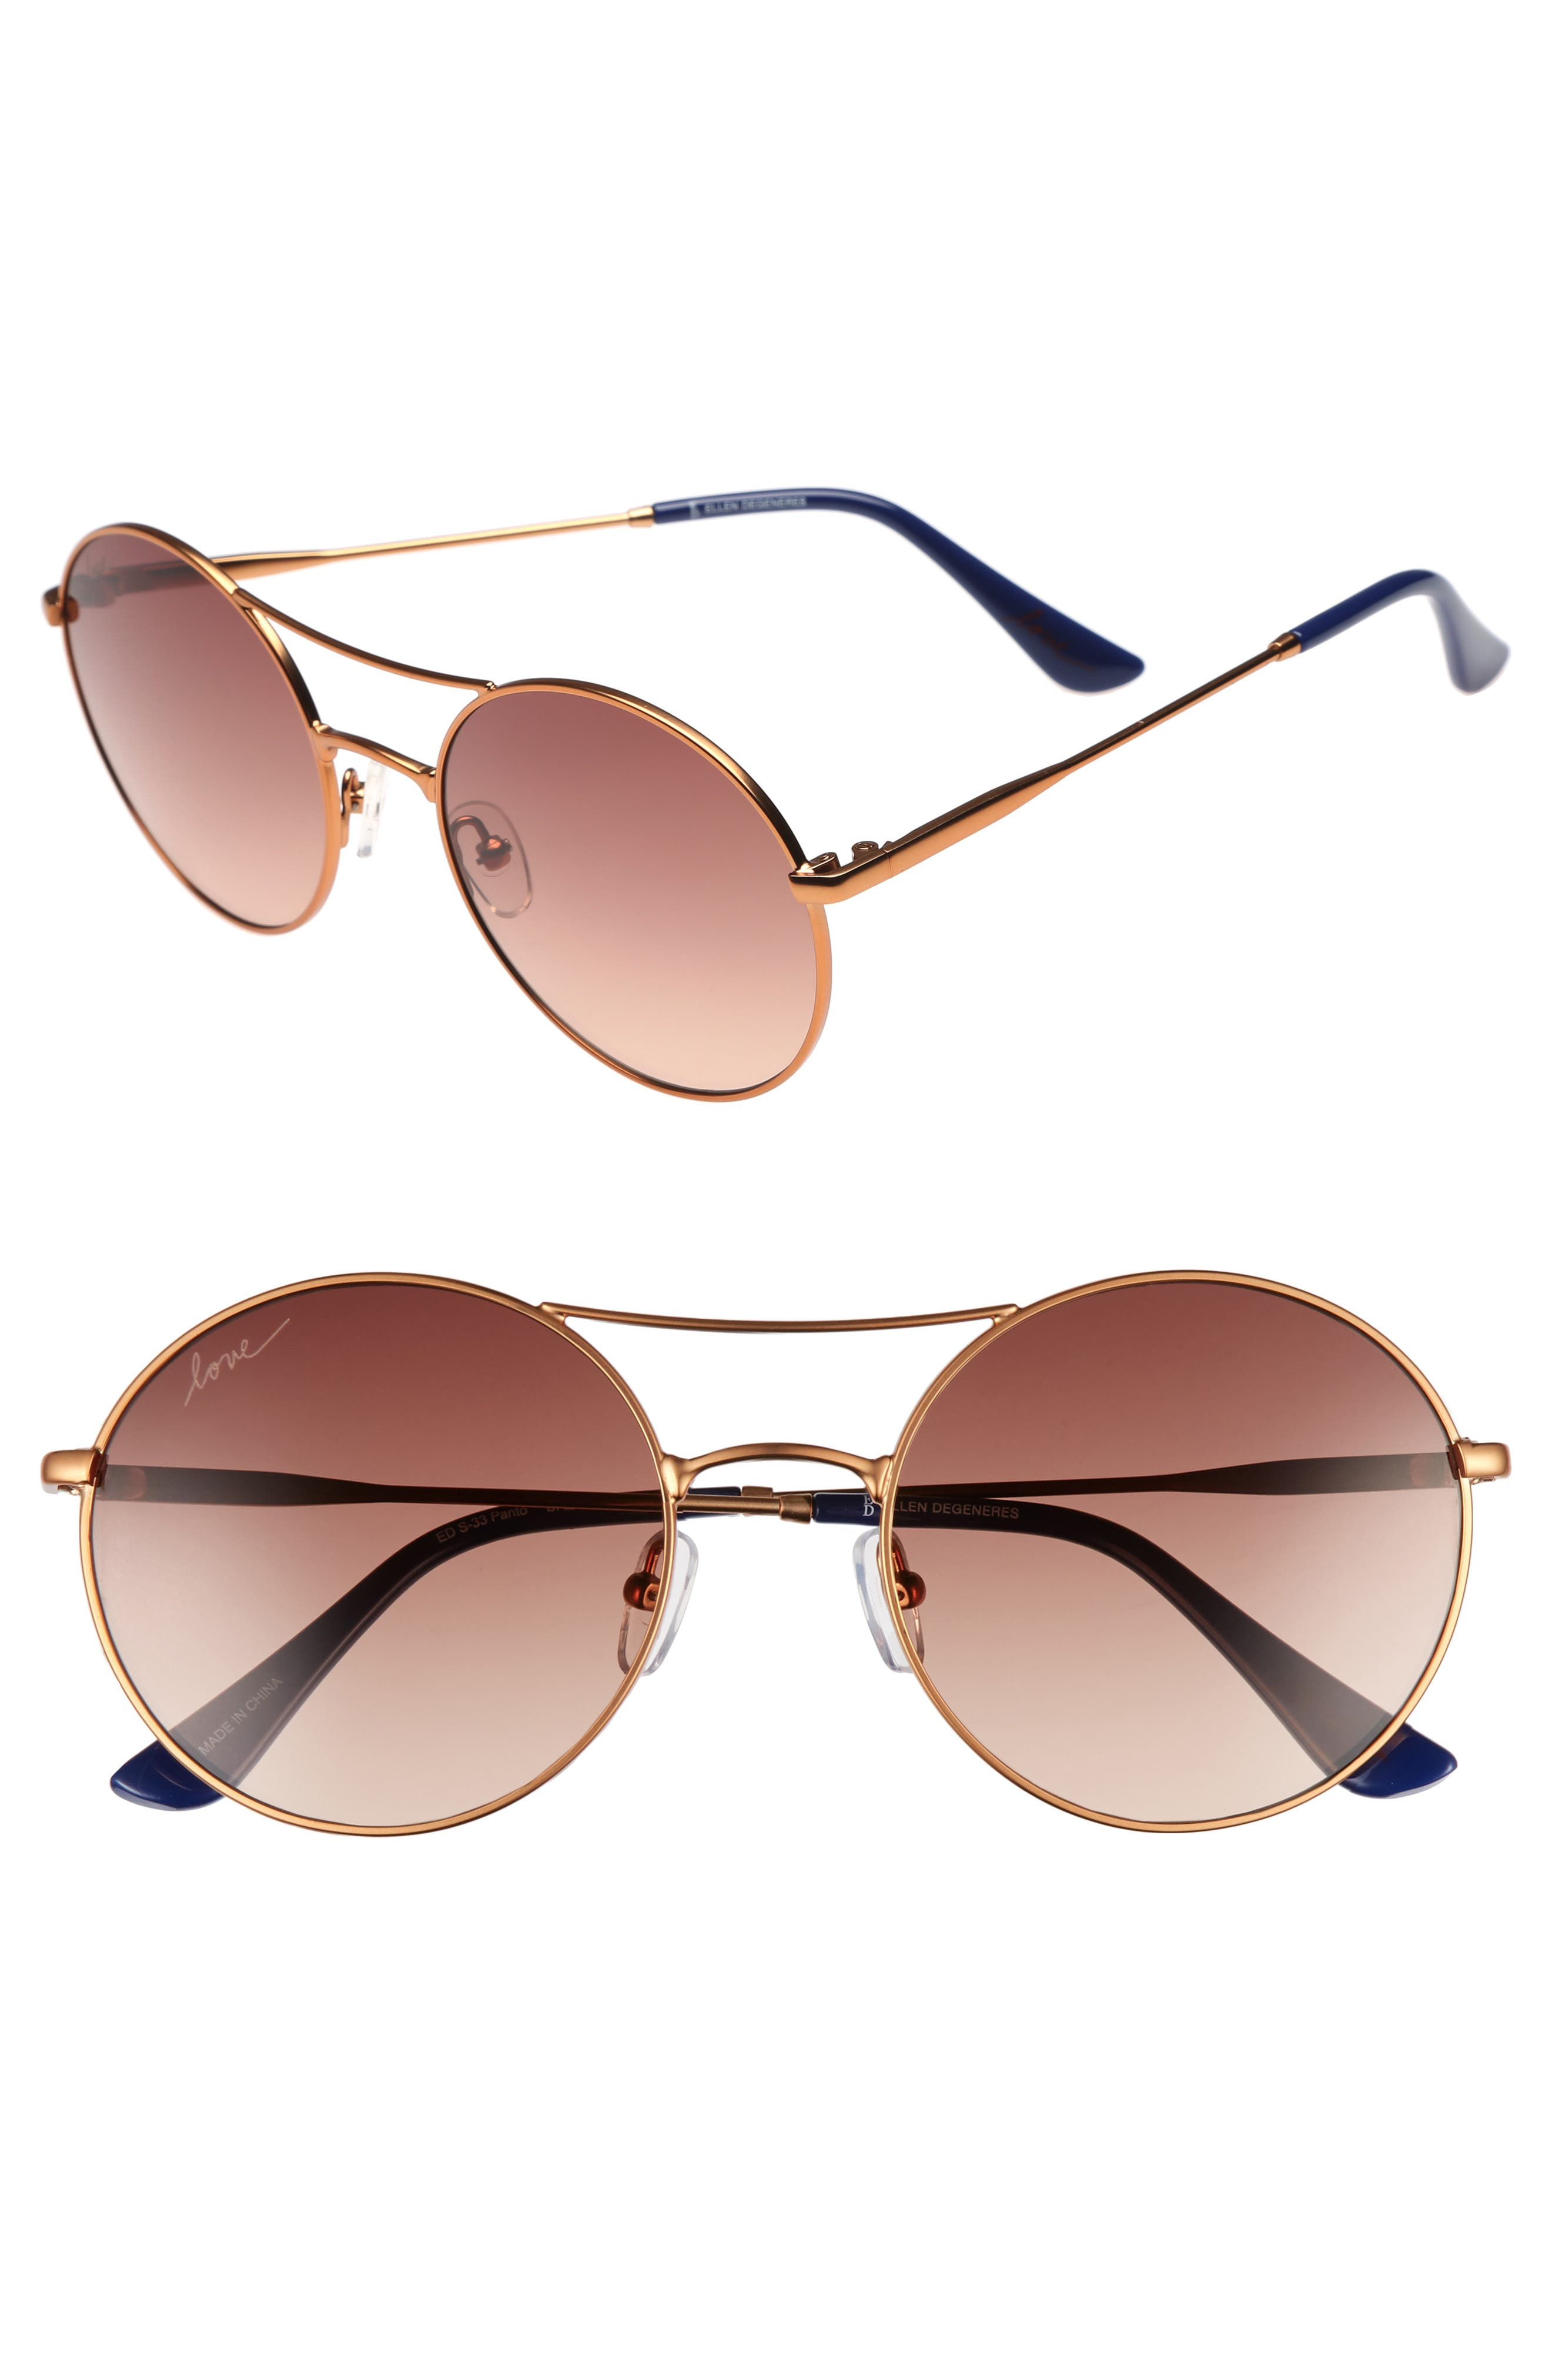 55mm Round Sunglasses,                             Main thumbnail 1, color,                             Bronze